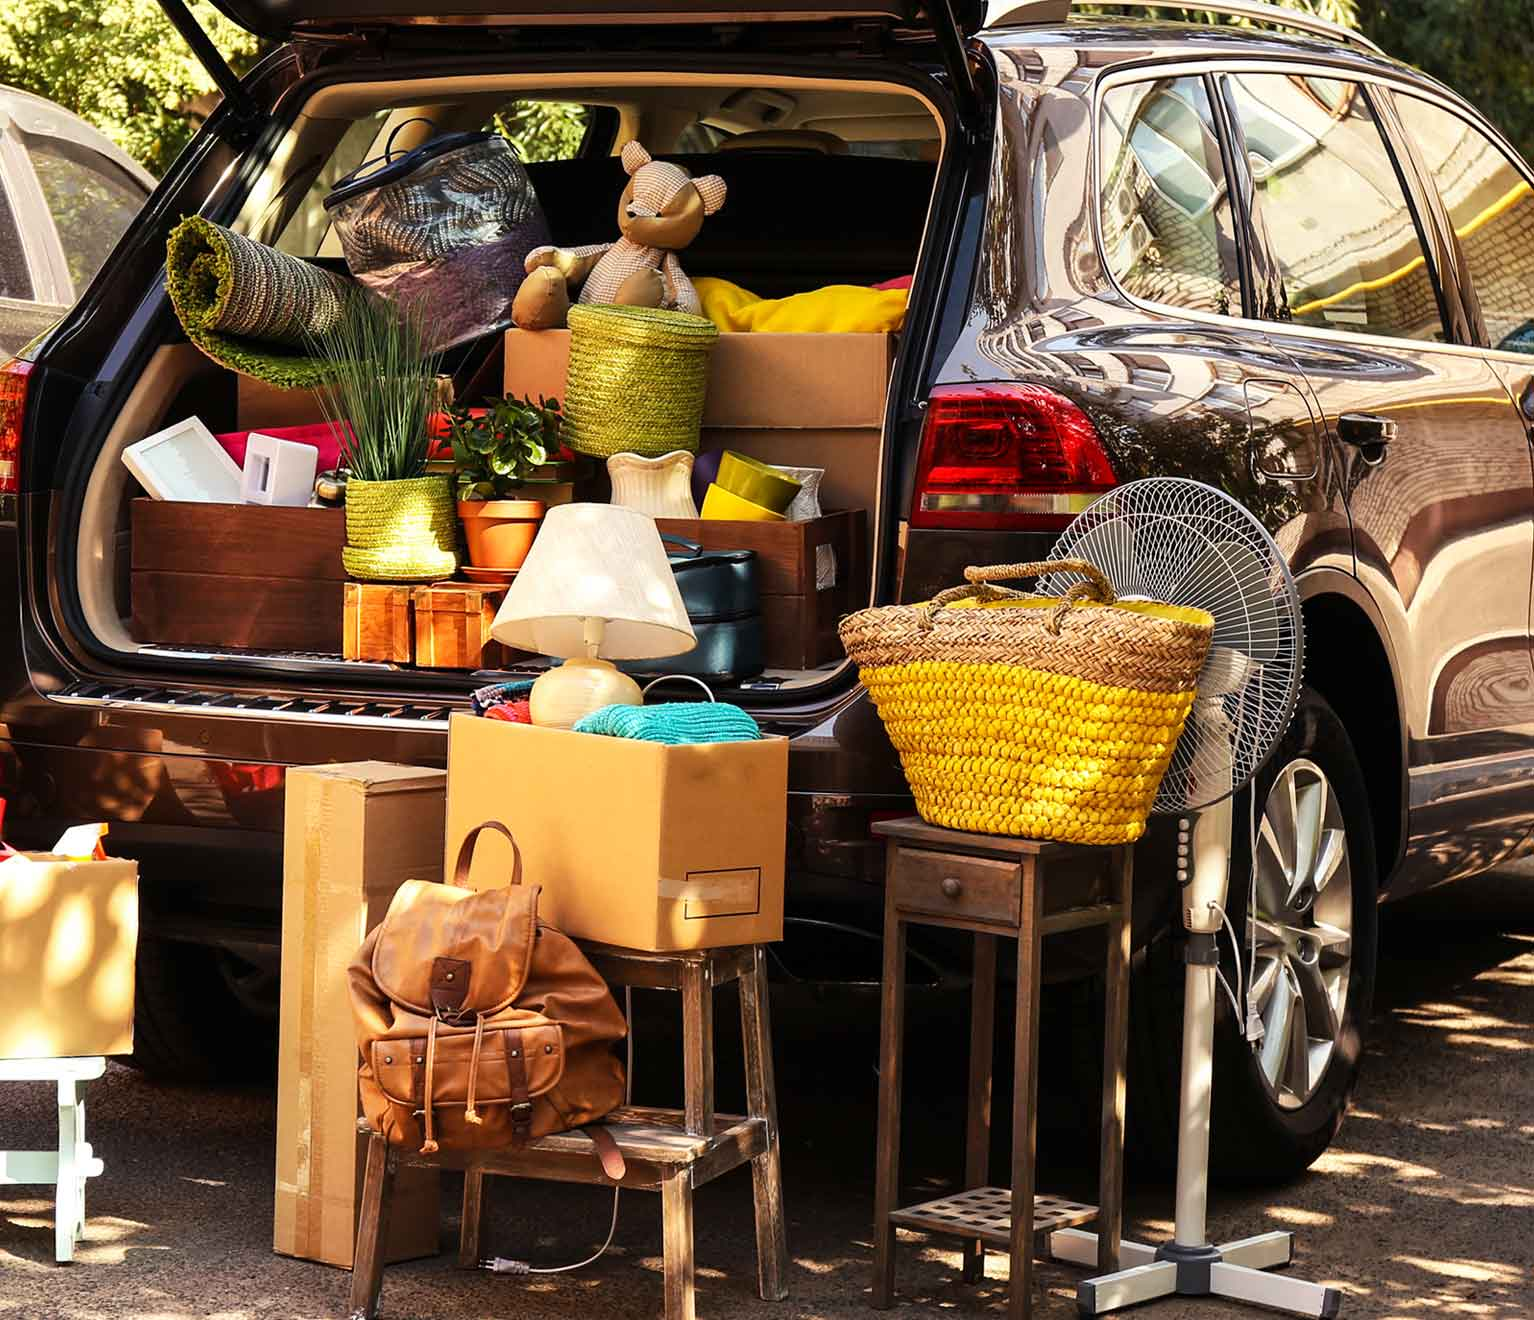 Emergency Roadside Service >> Moving Out of State Checklist | American Family Insurance